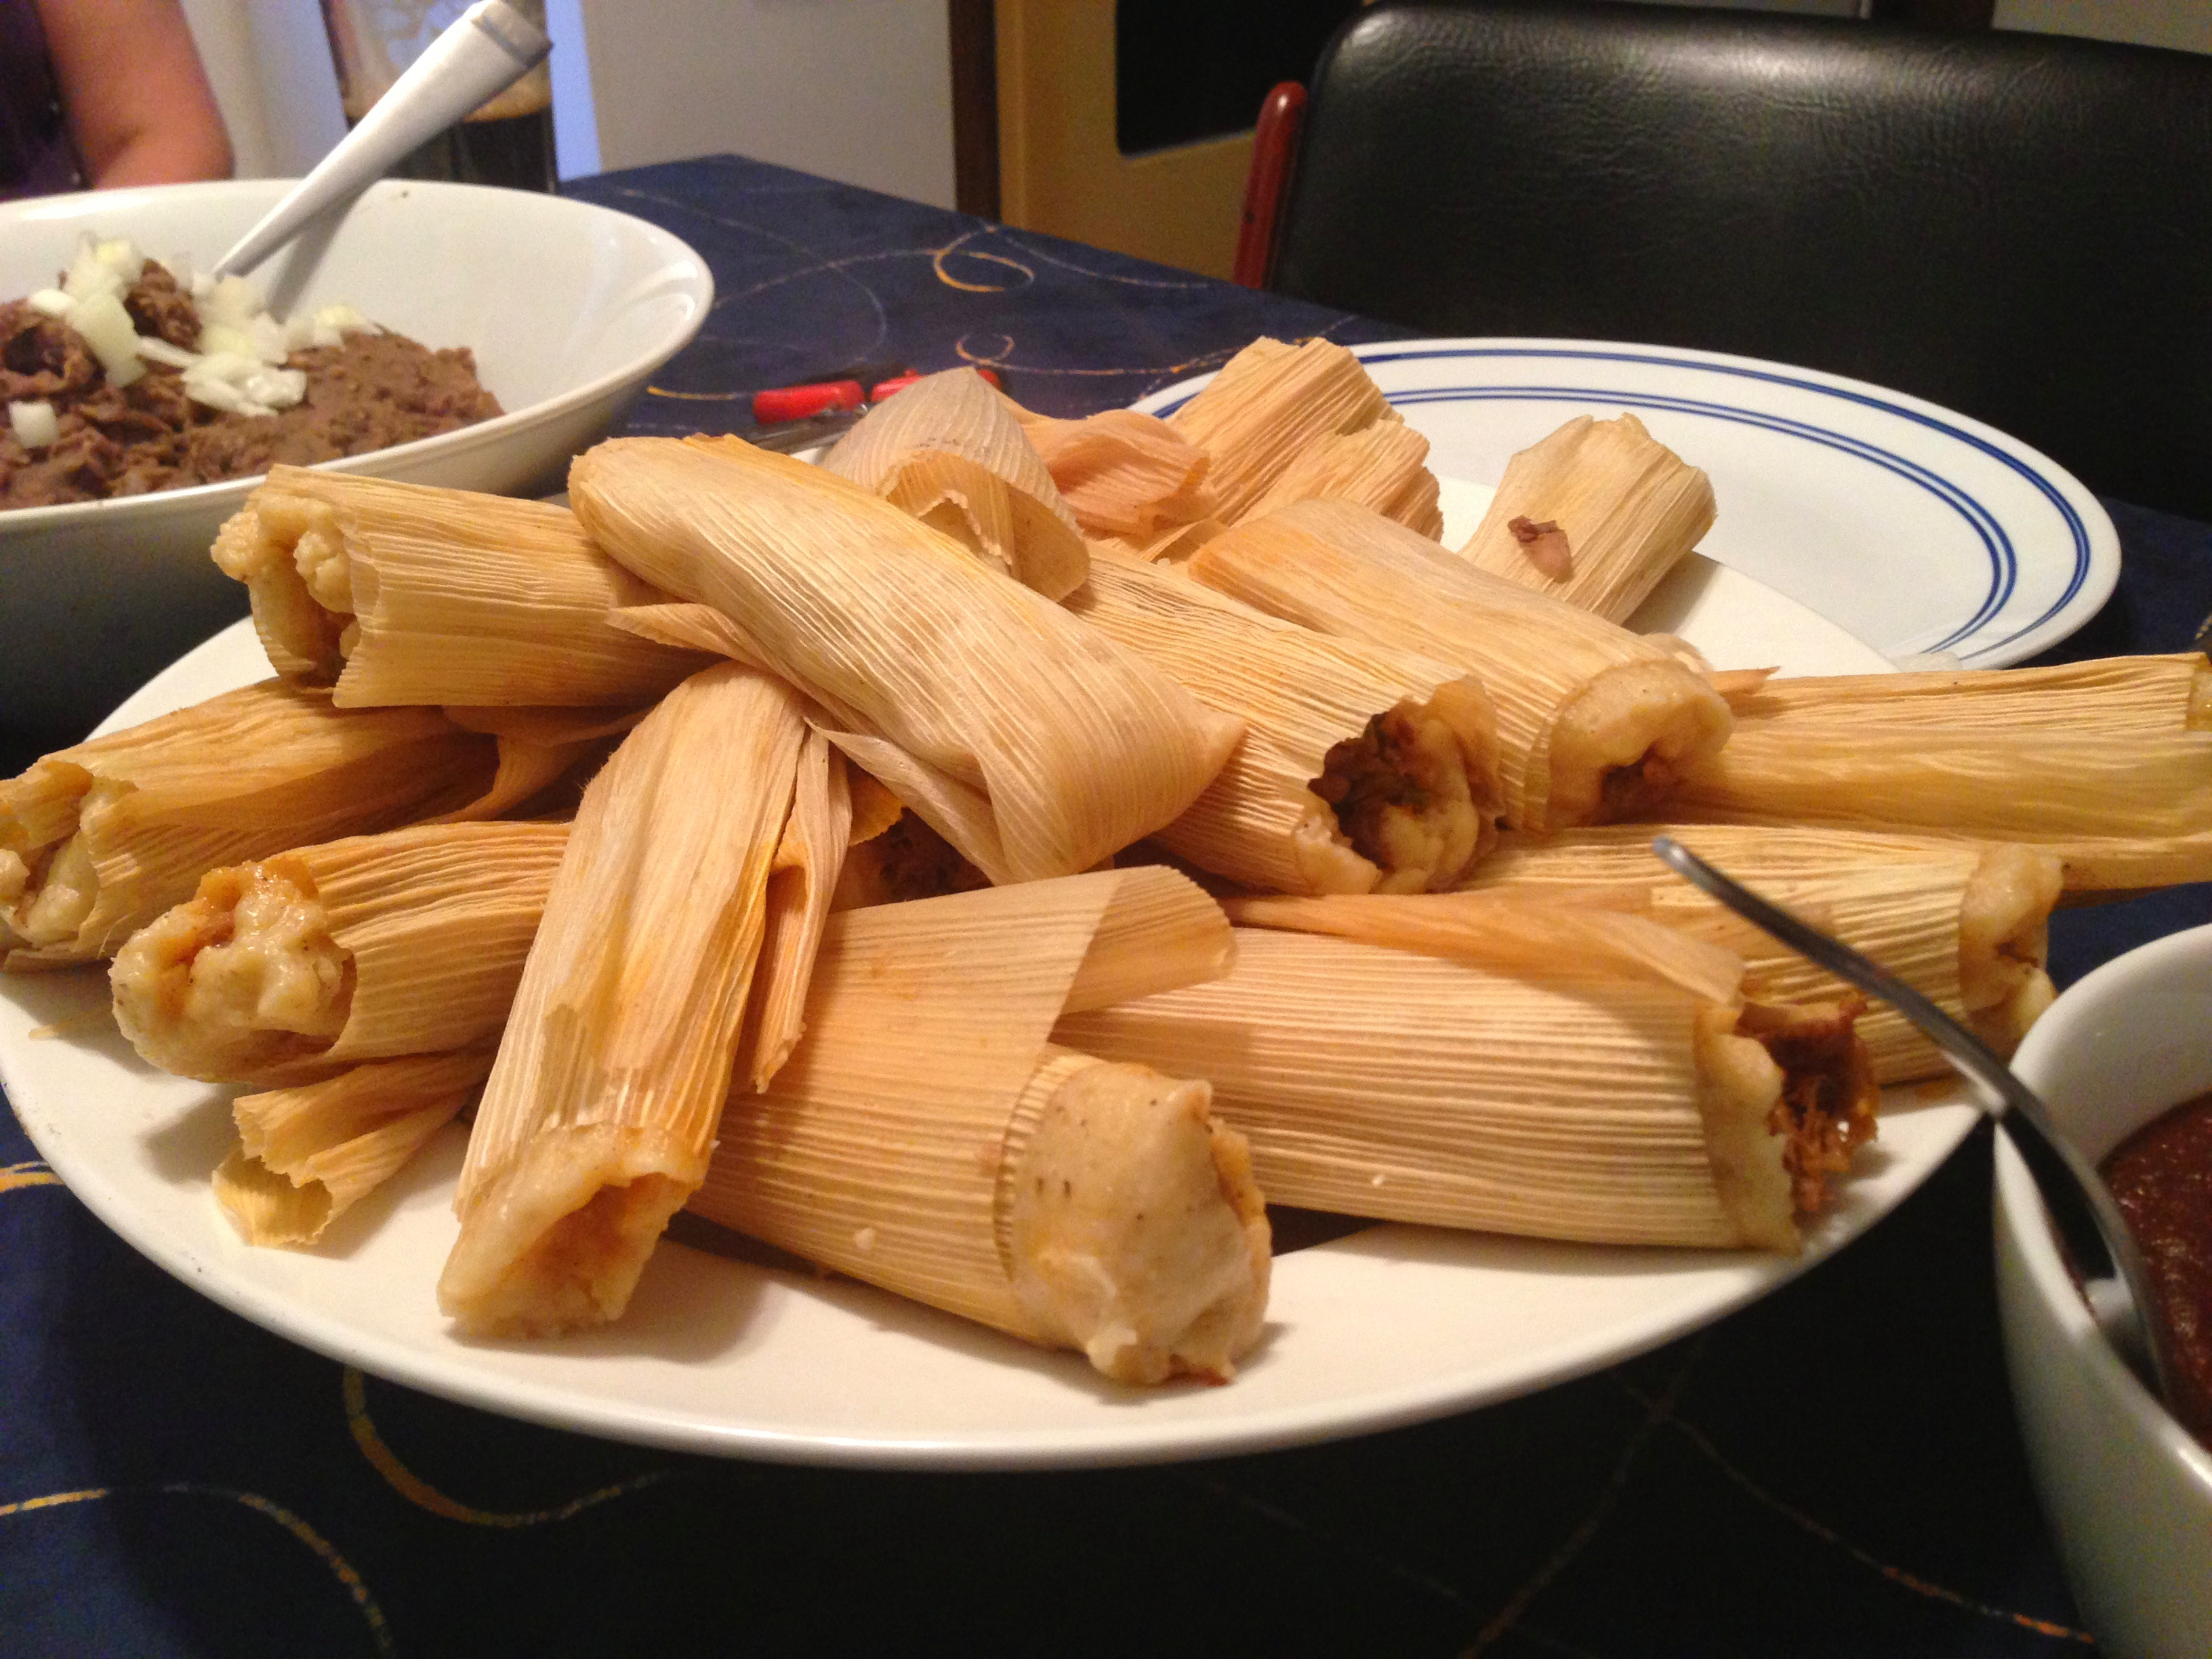 An image of tamales